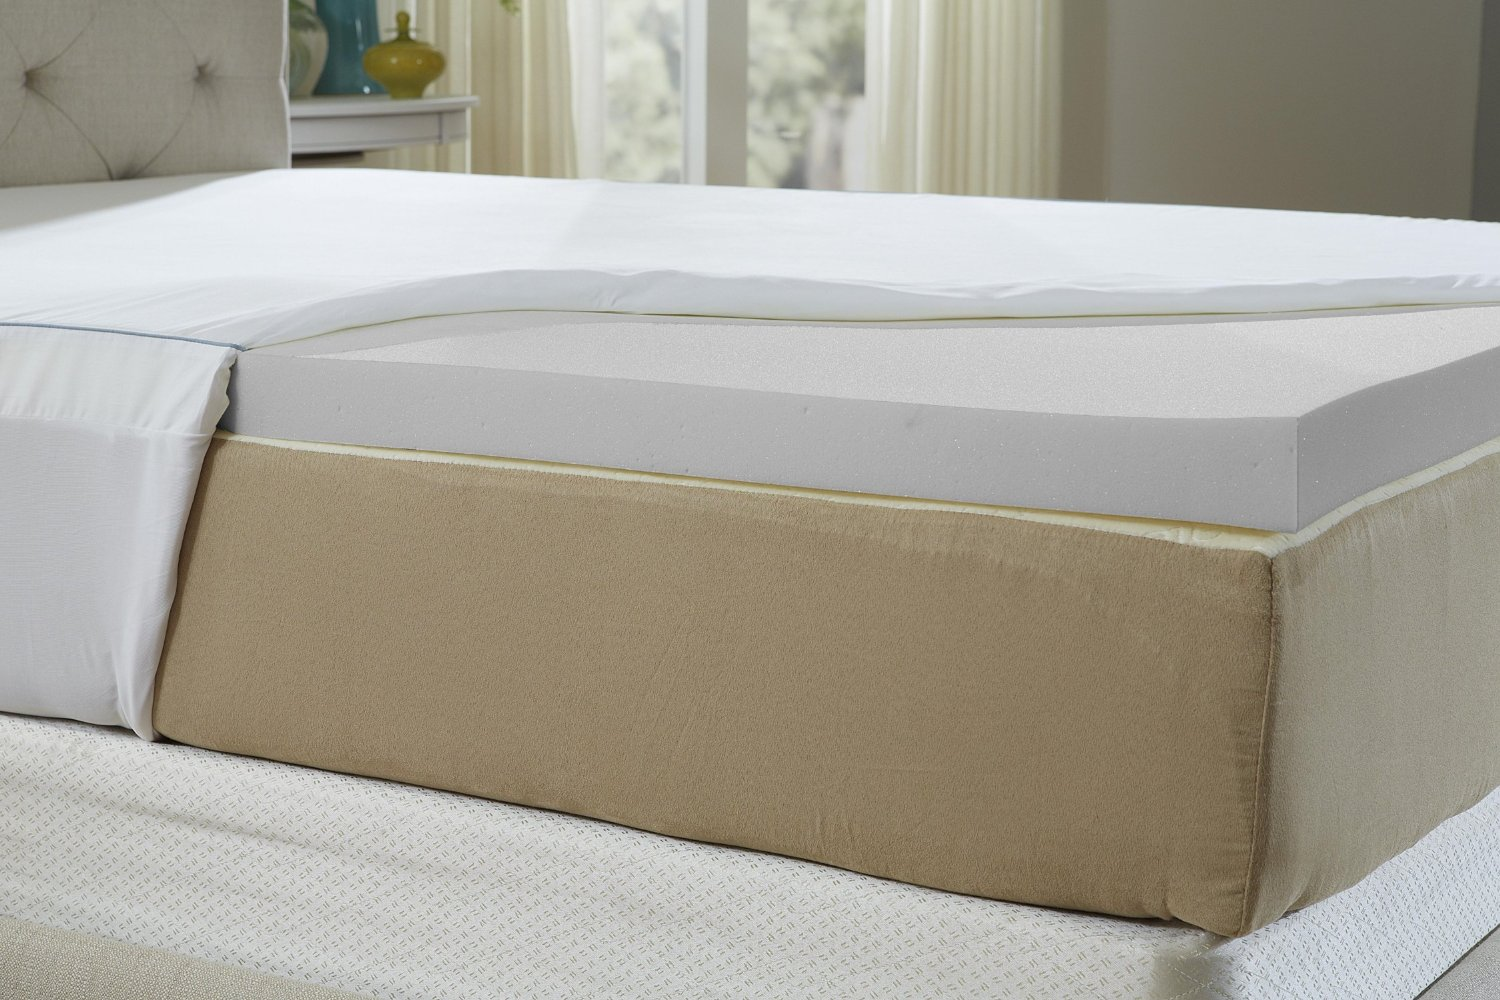 Natures Sleep Cool Iq King Size 2 5 Inch Thick 4 Pound Density Memory Foam Mattress Topper With 18 Ed Cotton Cover 219 99